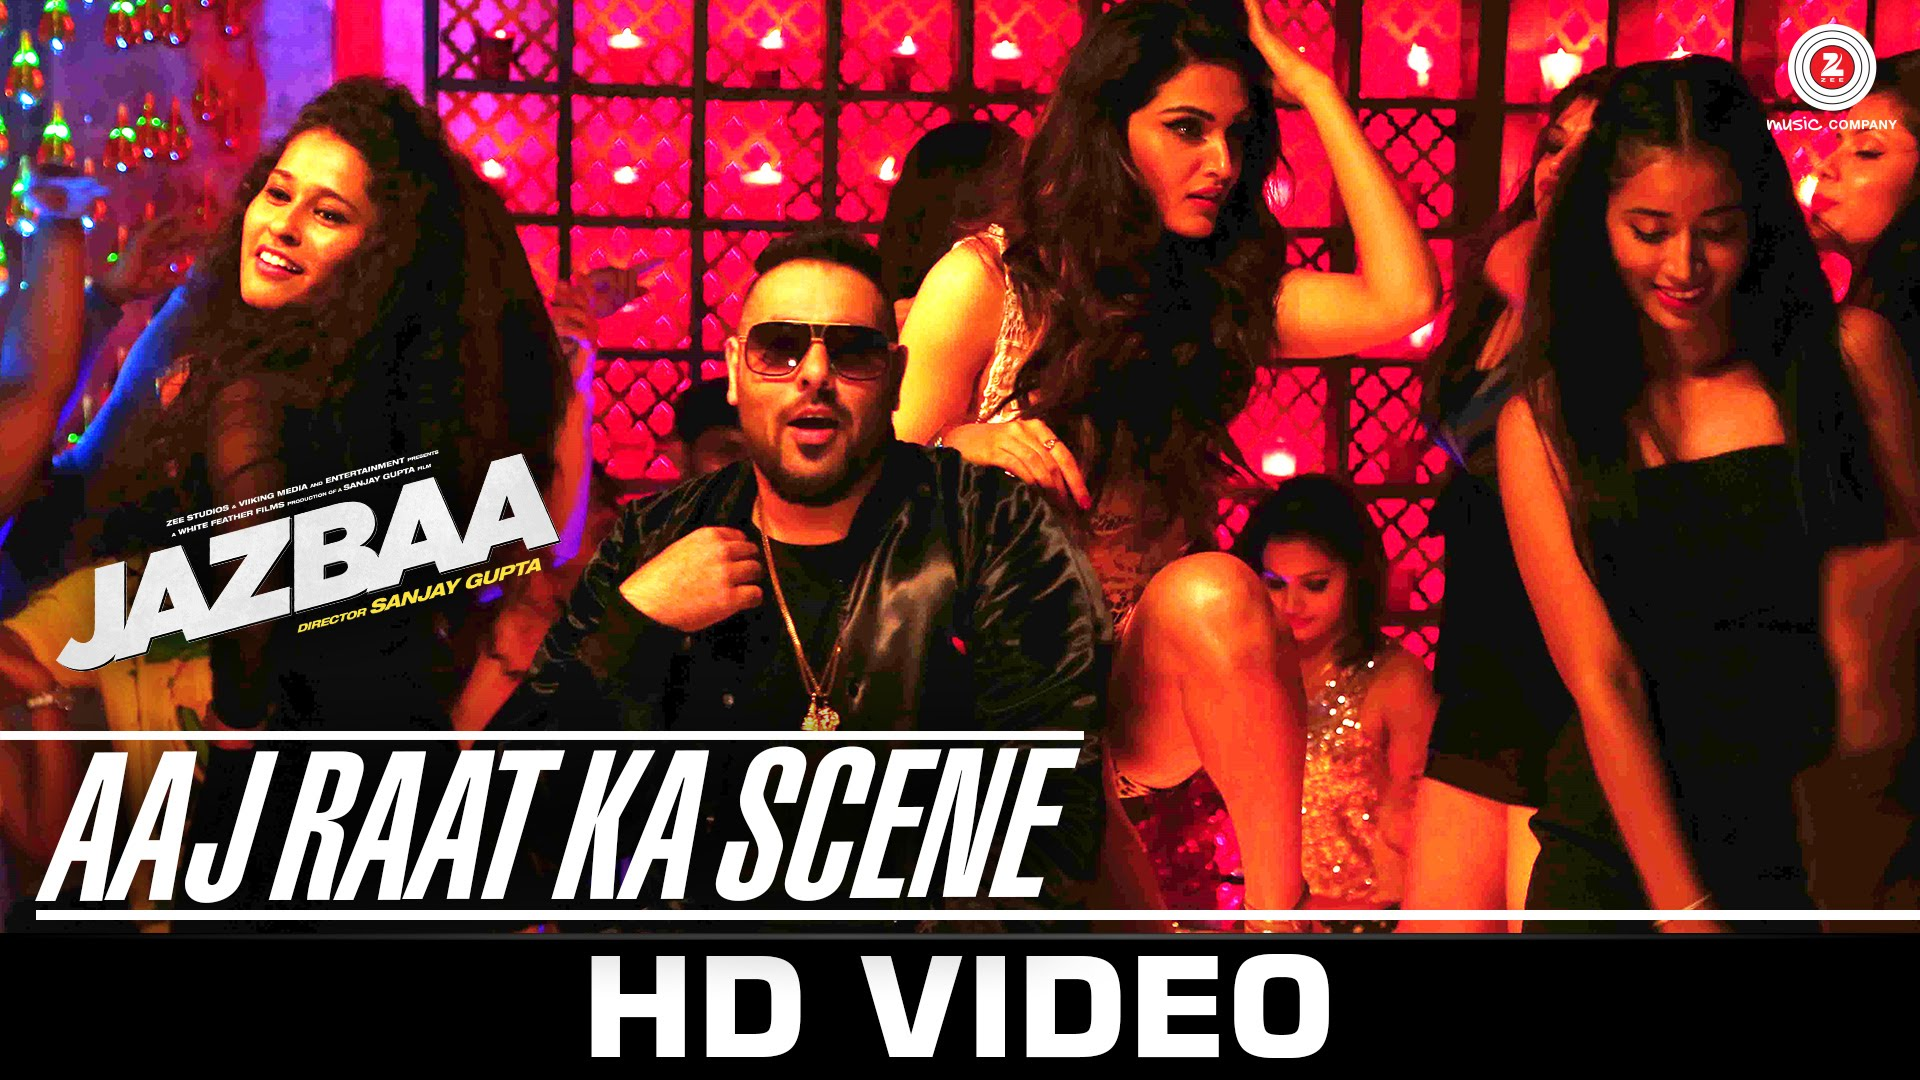 New Song Alert | 'Aaj Raat Ka Scene' from Jazbaa